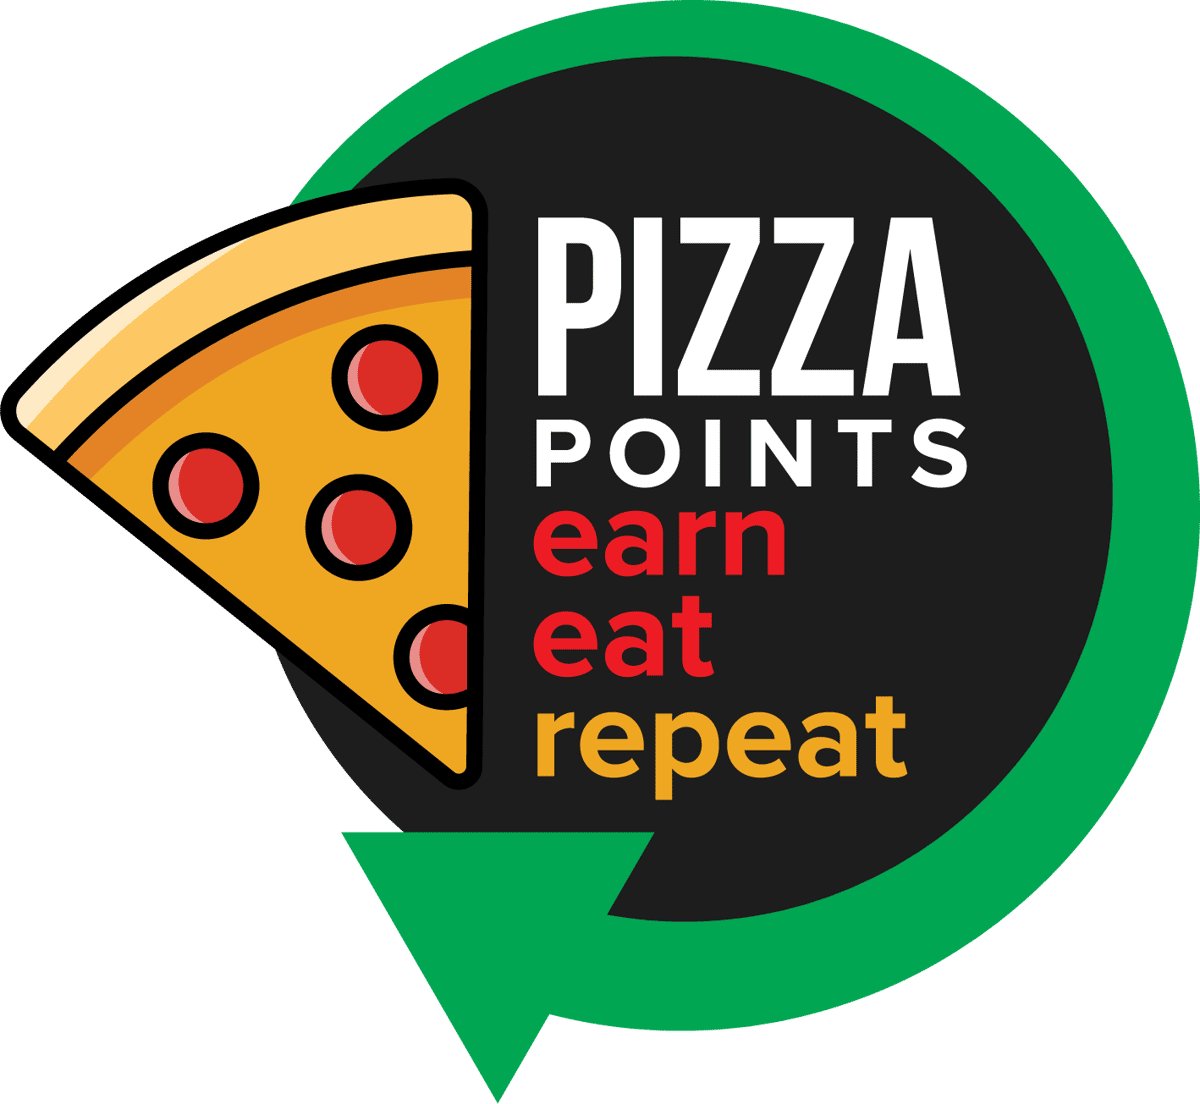 pizza points